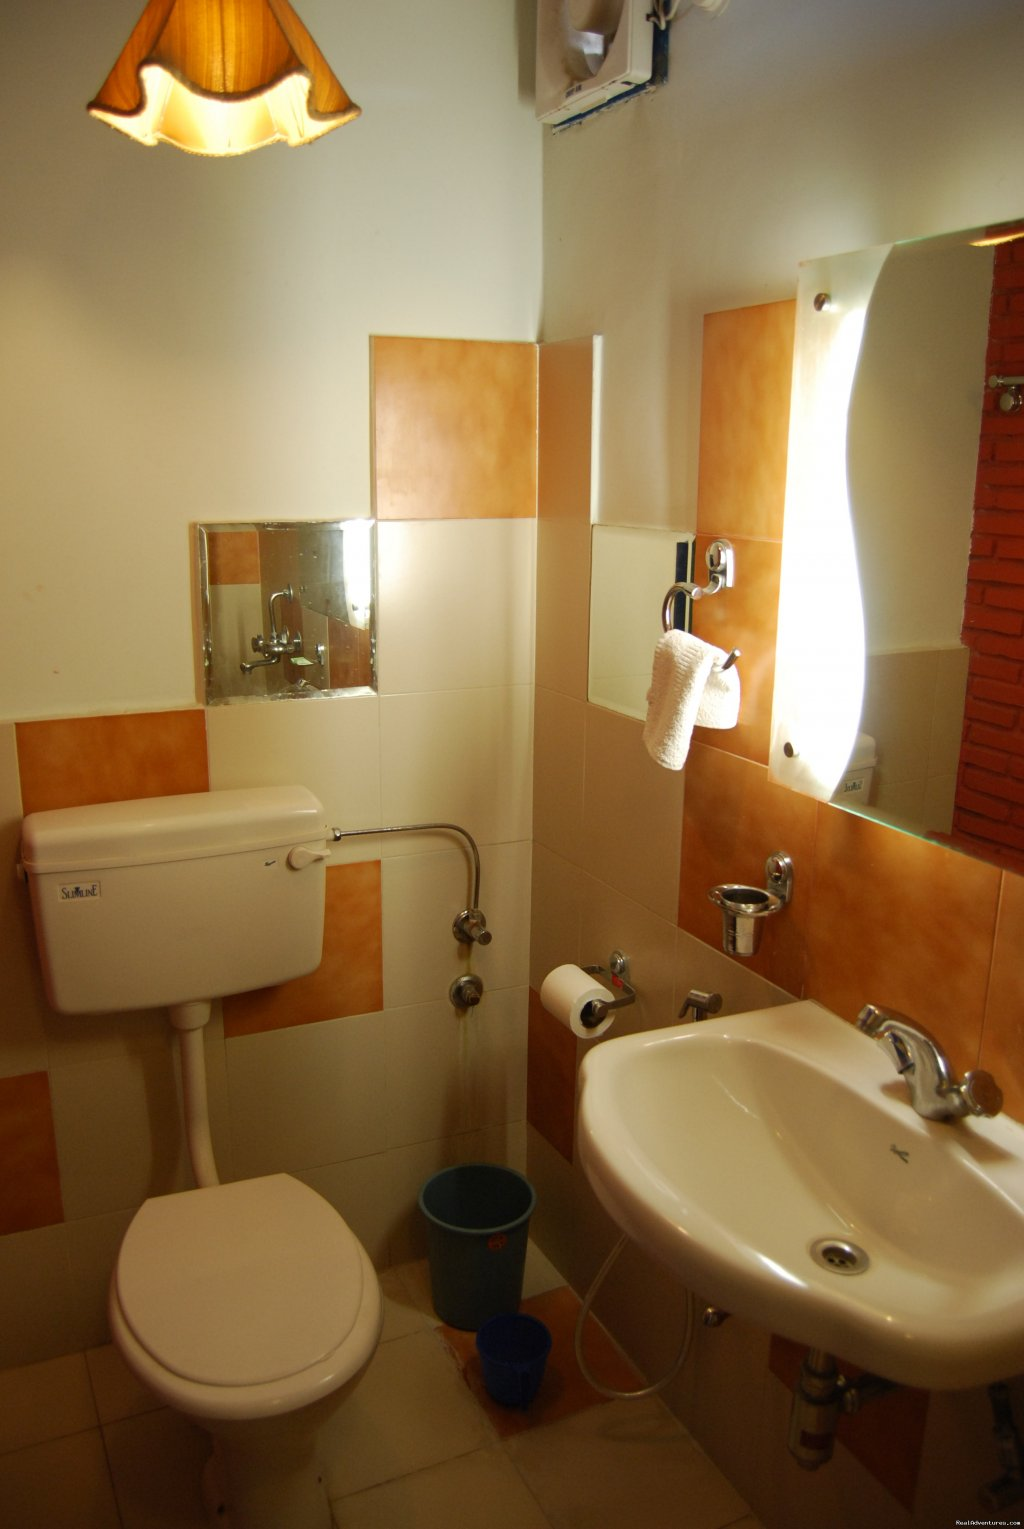 Bathroom | Image #6/6 | Rahul guest house & hotels